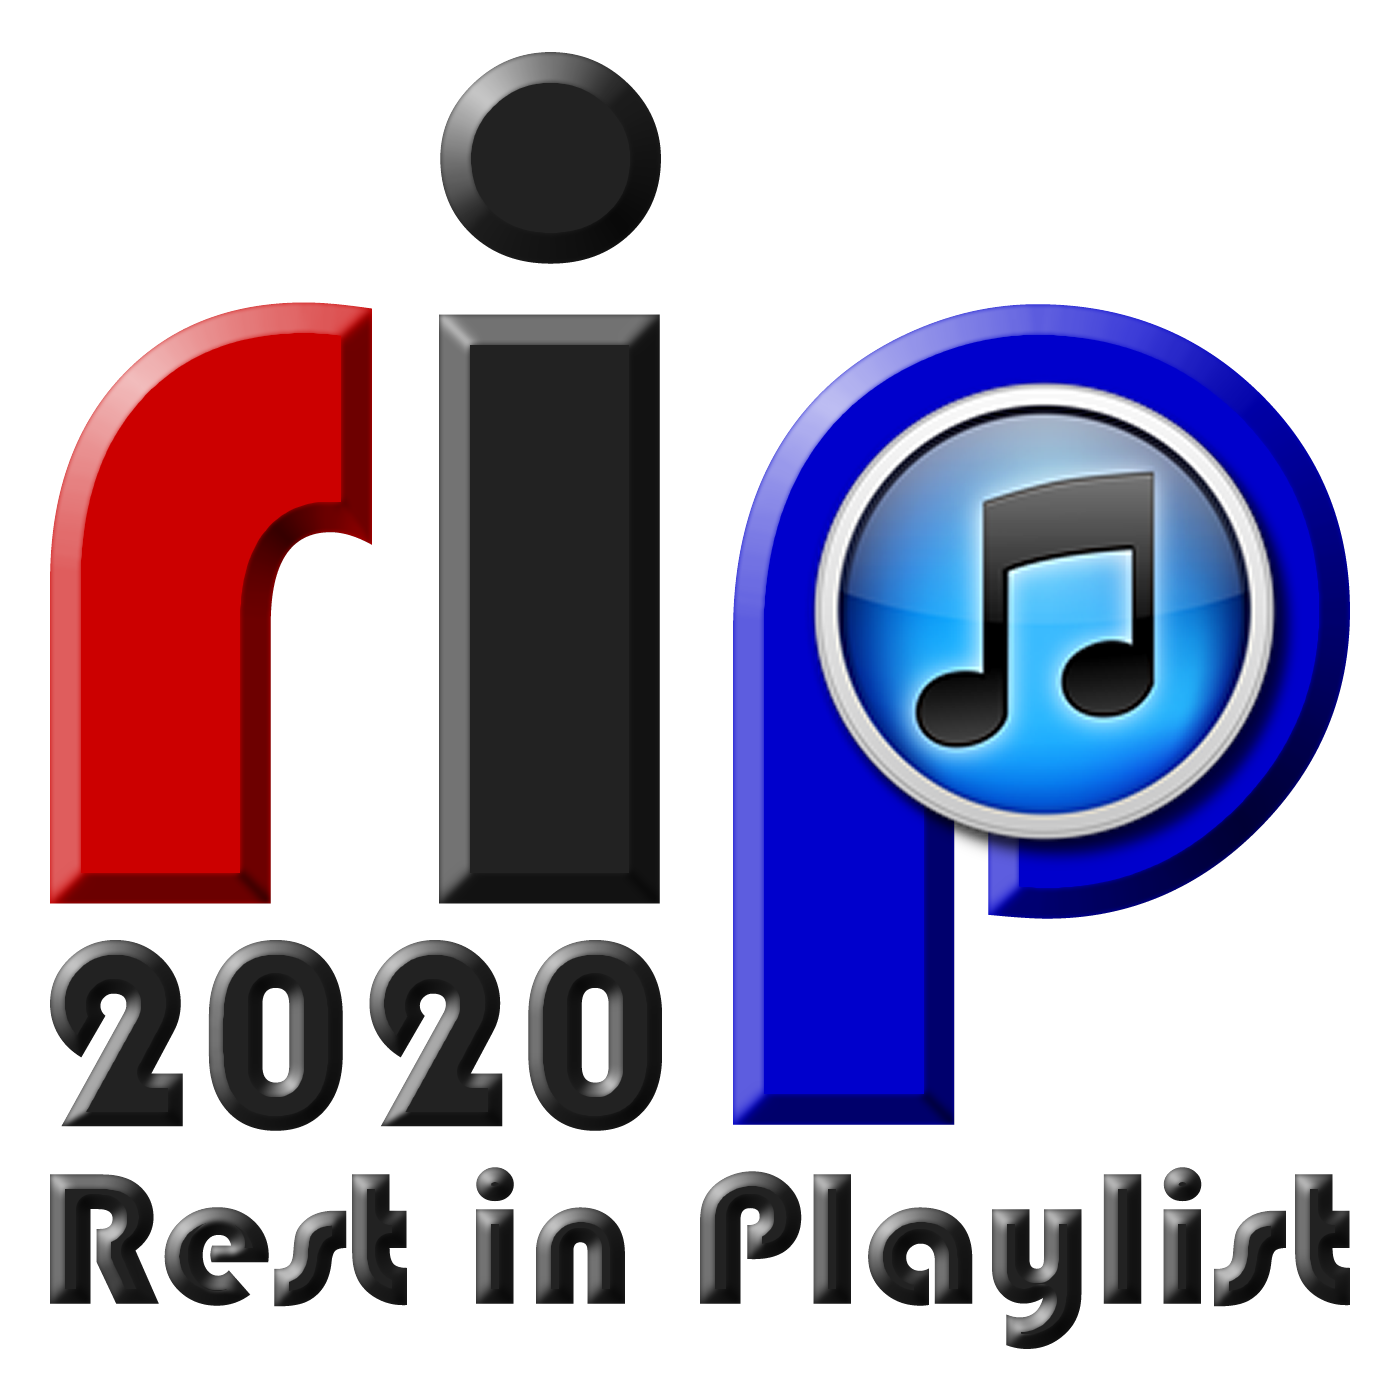 Rest in Playlist